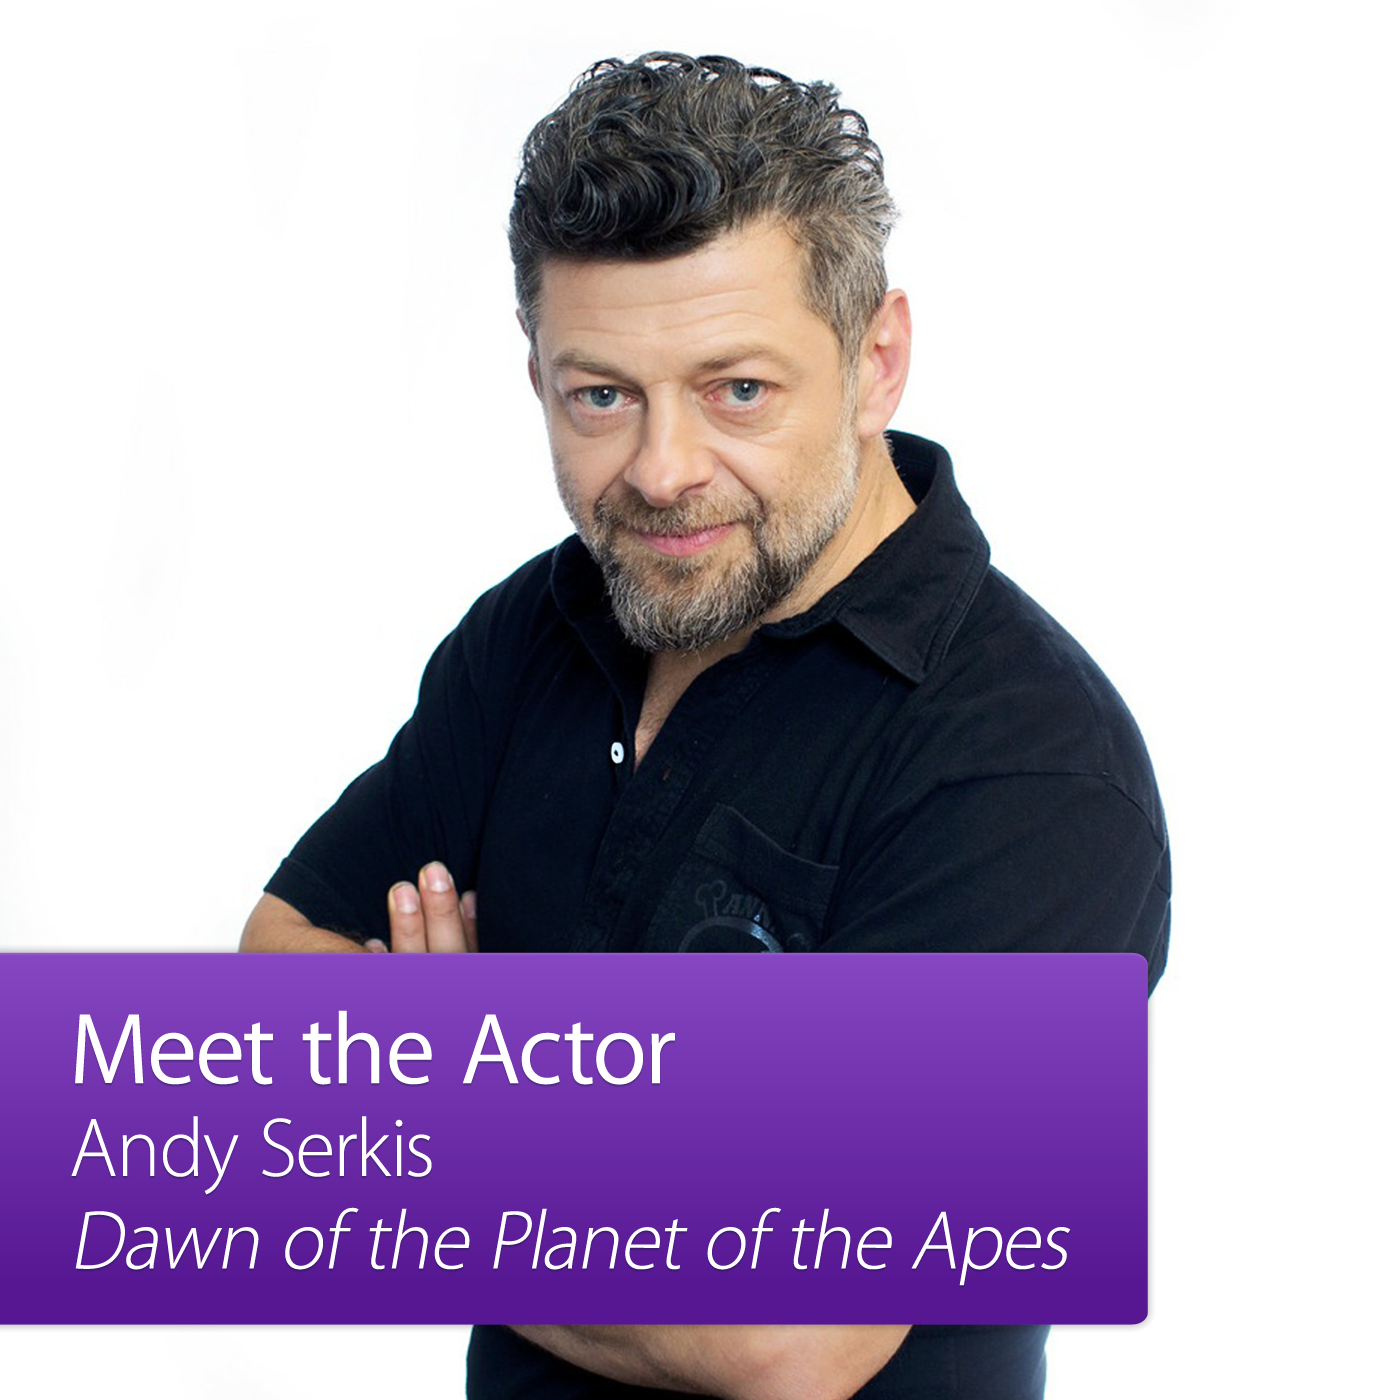 Andy Serkis: Meet the Actor